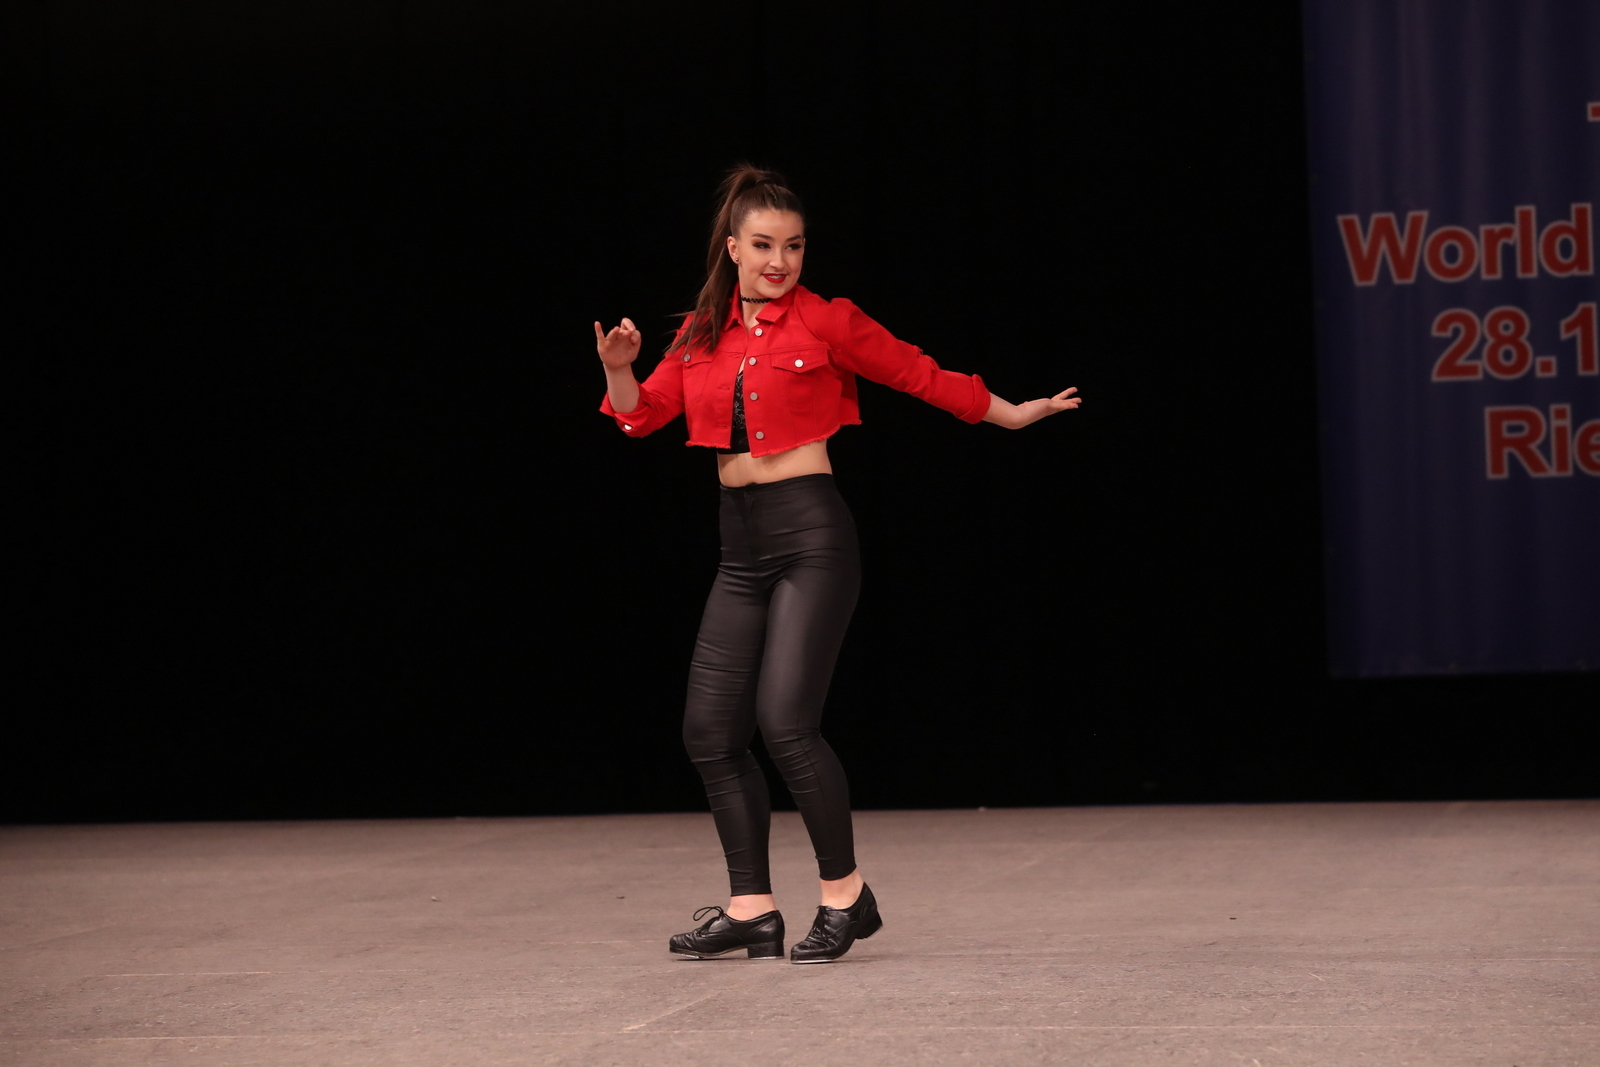 Liz Lundy went to the World Tap Championships